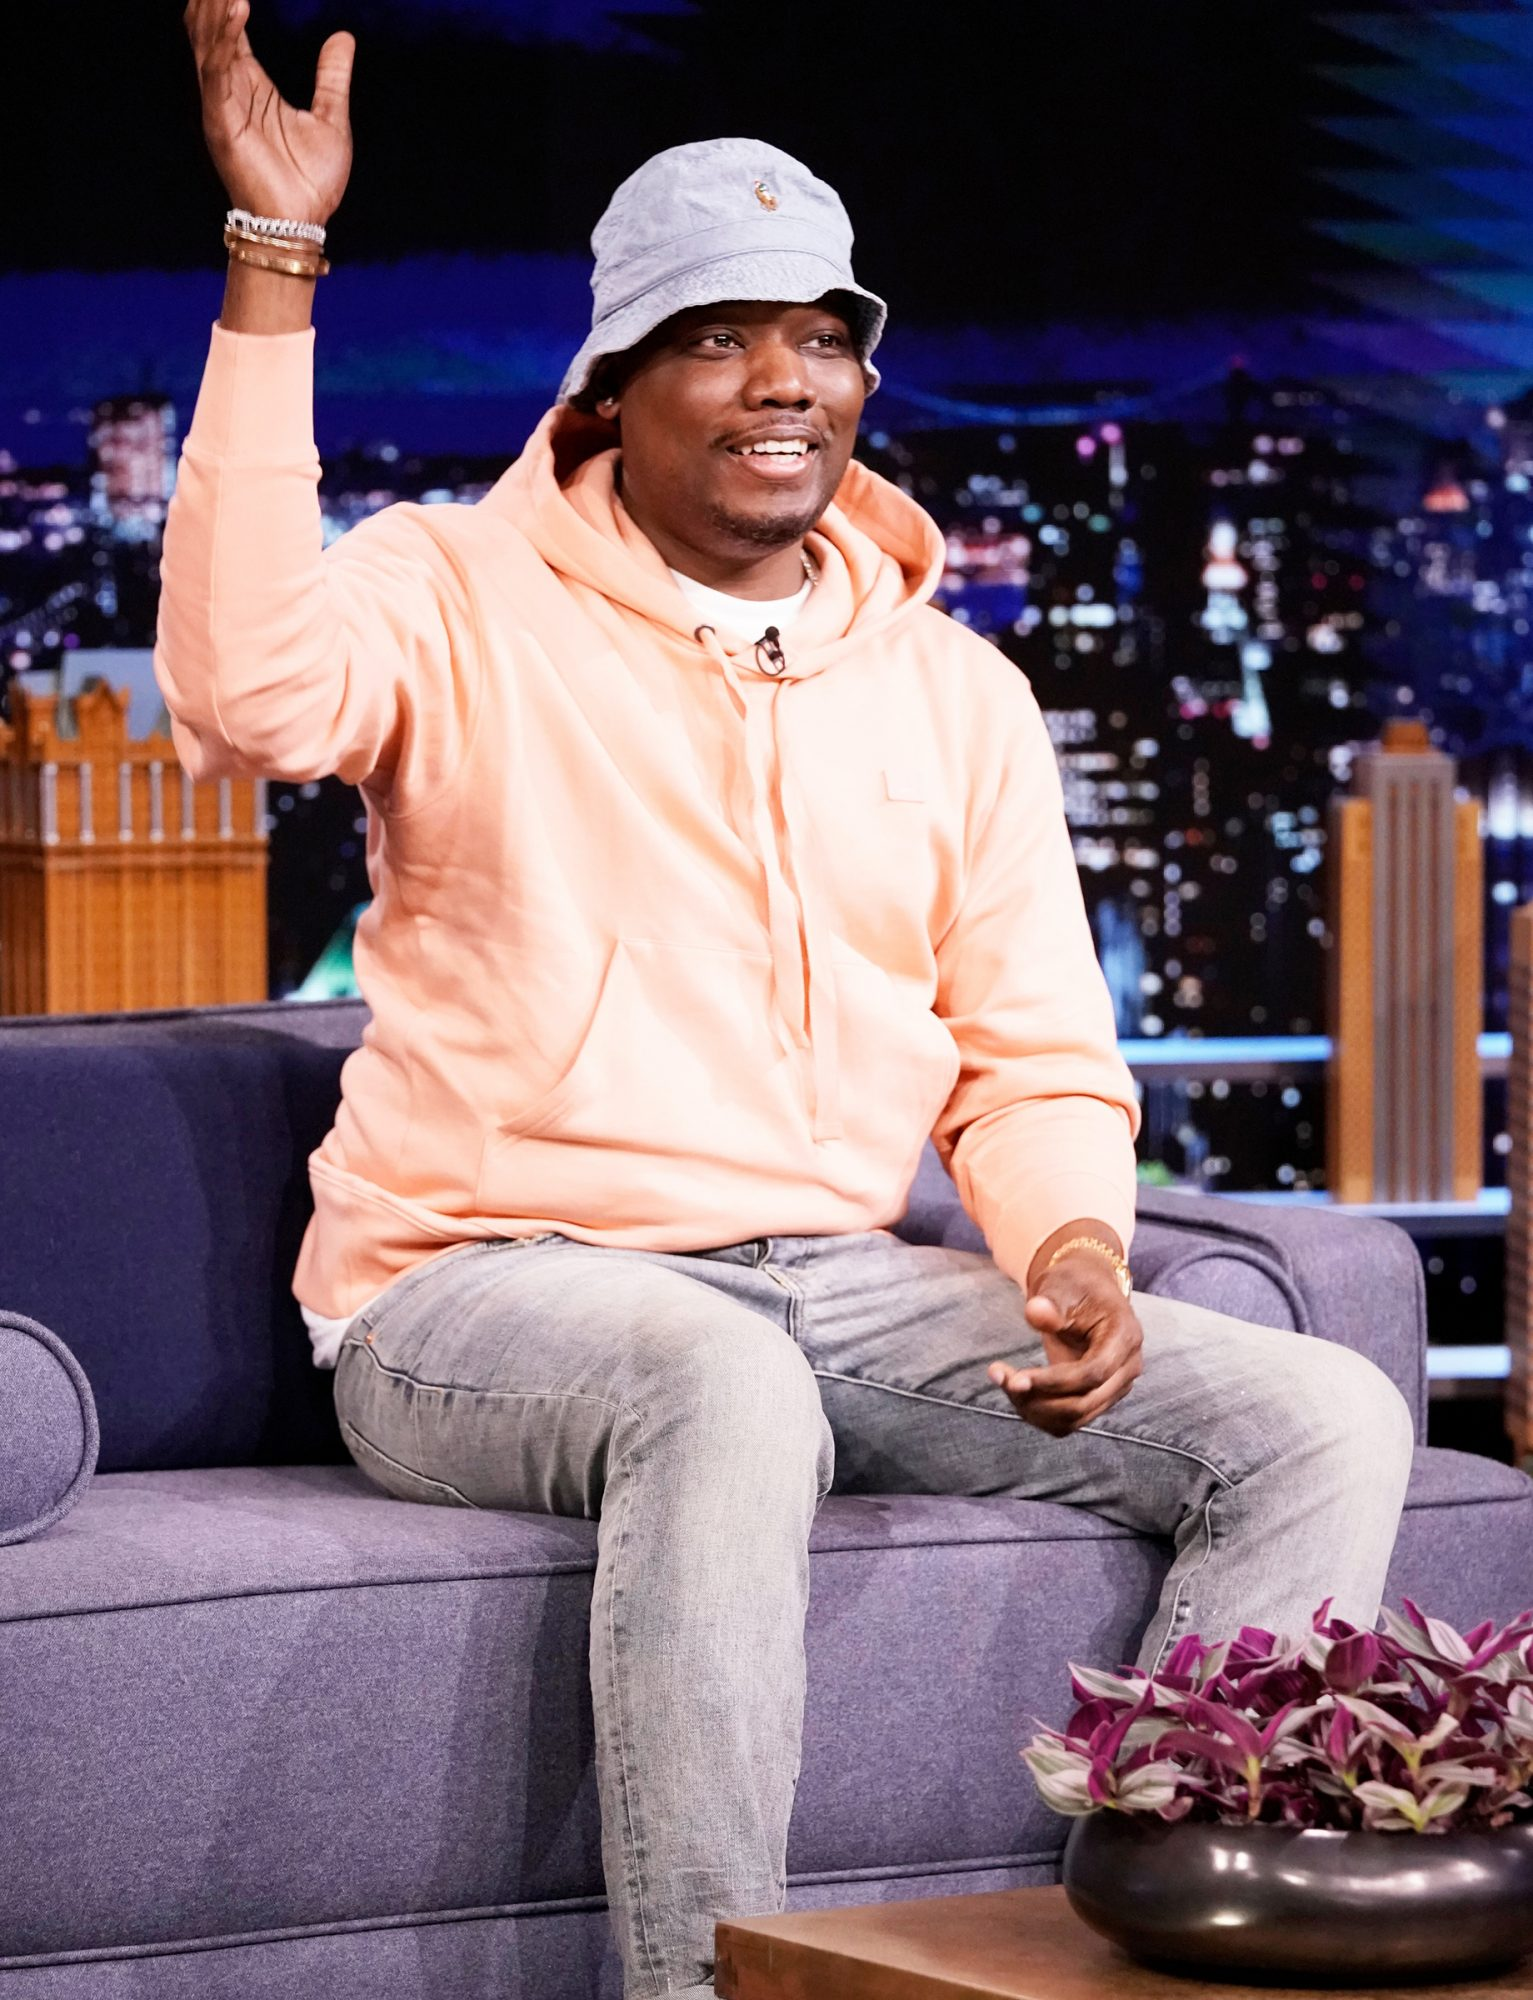 THE TONIGHT SHOW STARRING JIMMY FALLON -- Episode 1450 -- Pictured: Comedian Michael Che during an interview on Tuesday, April 27, 2021